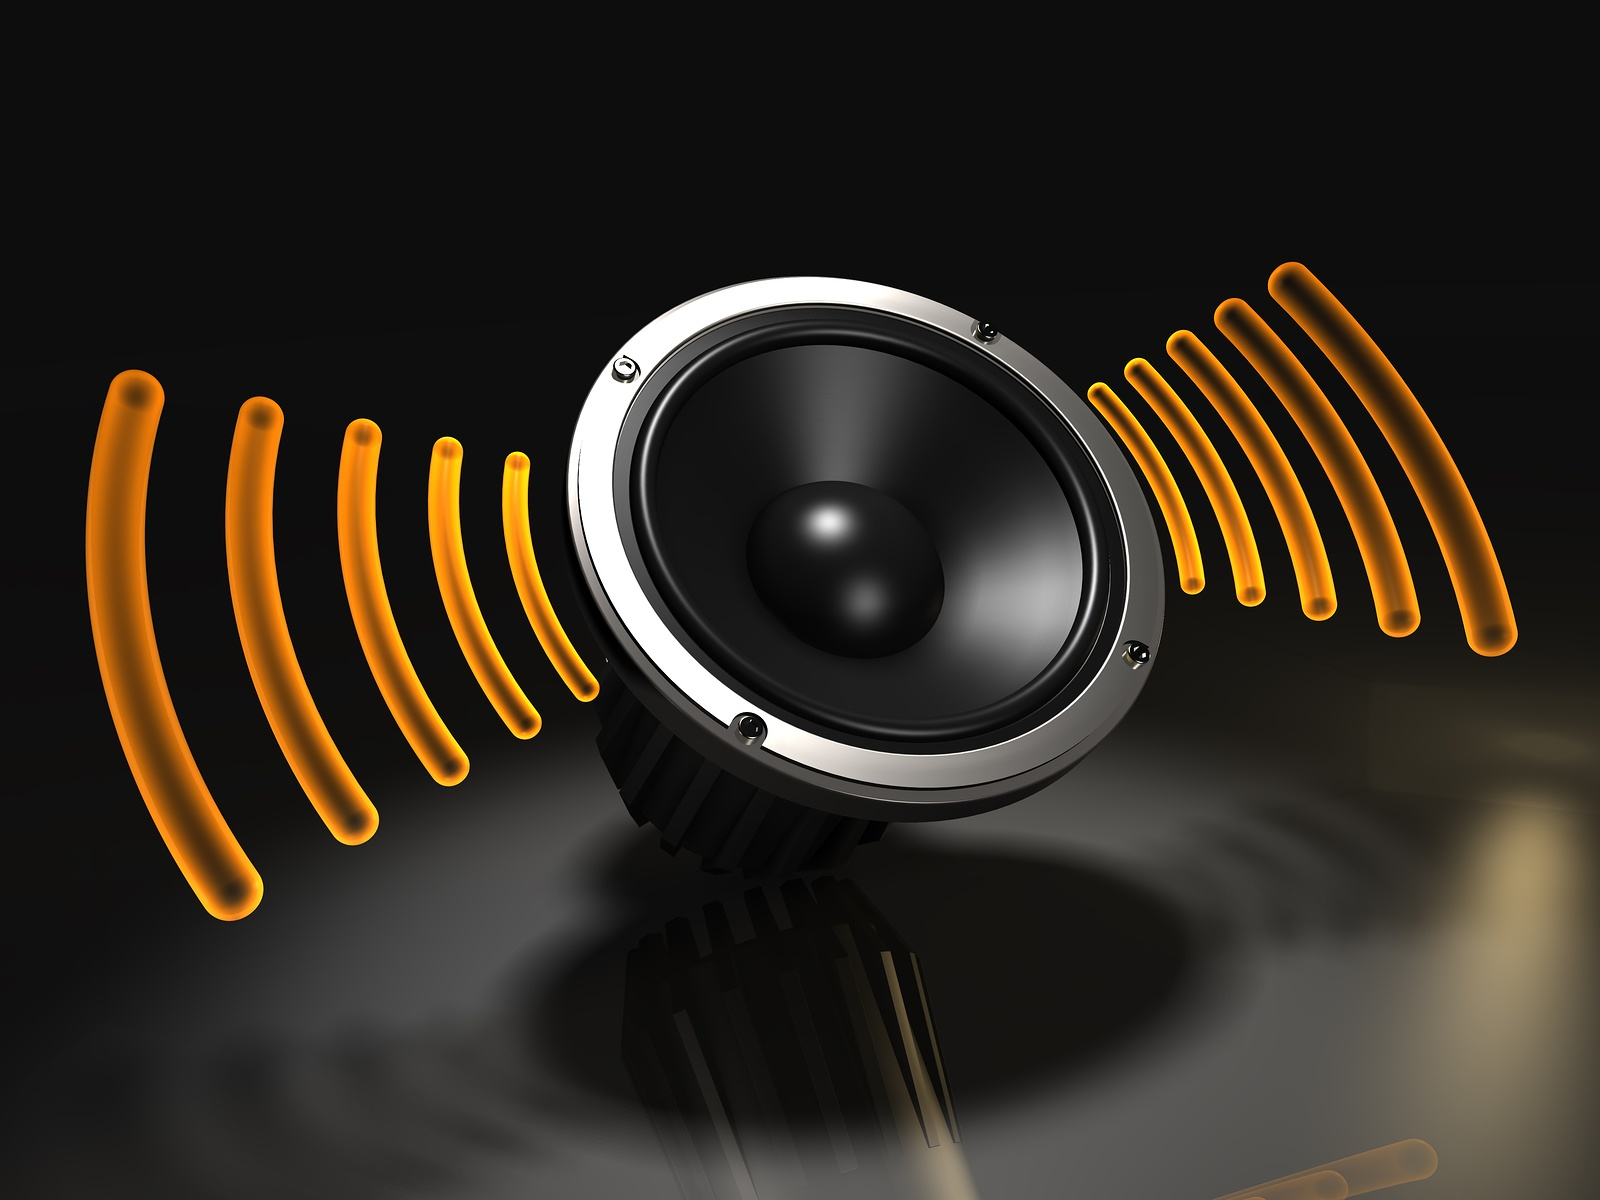 1600x1200 Sound Waves wallpaper, music and dance wallpapers